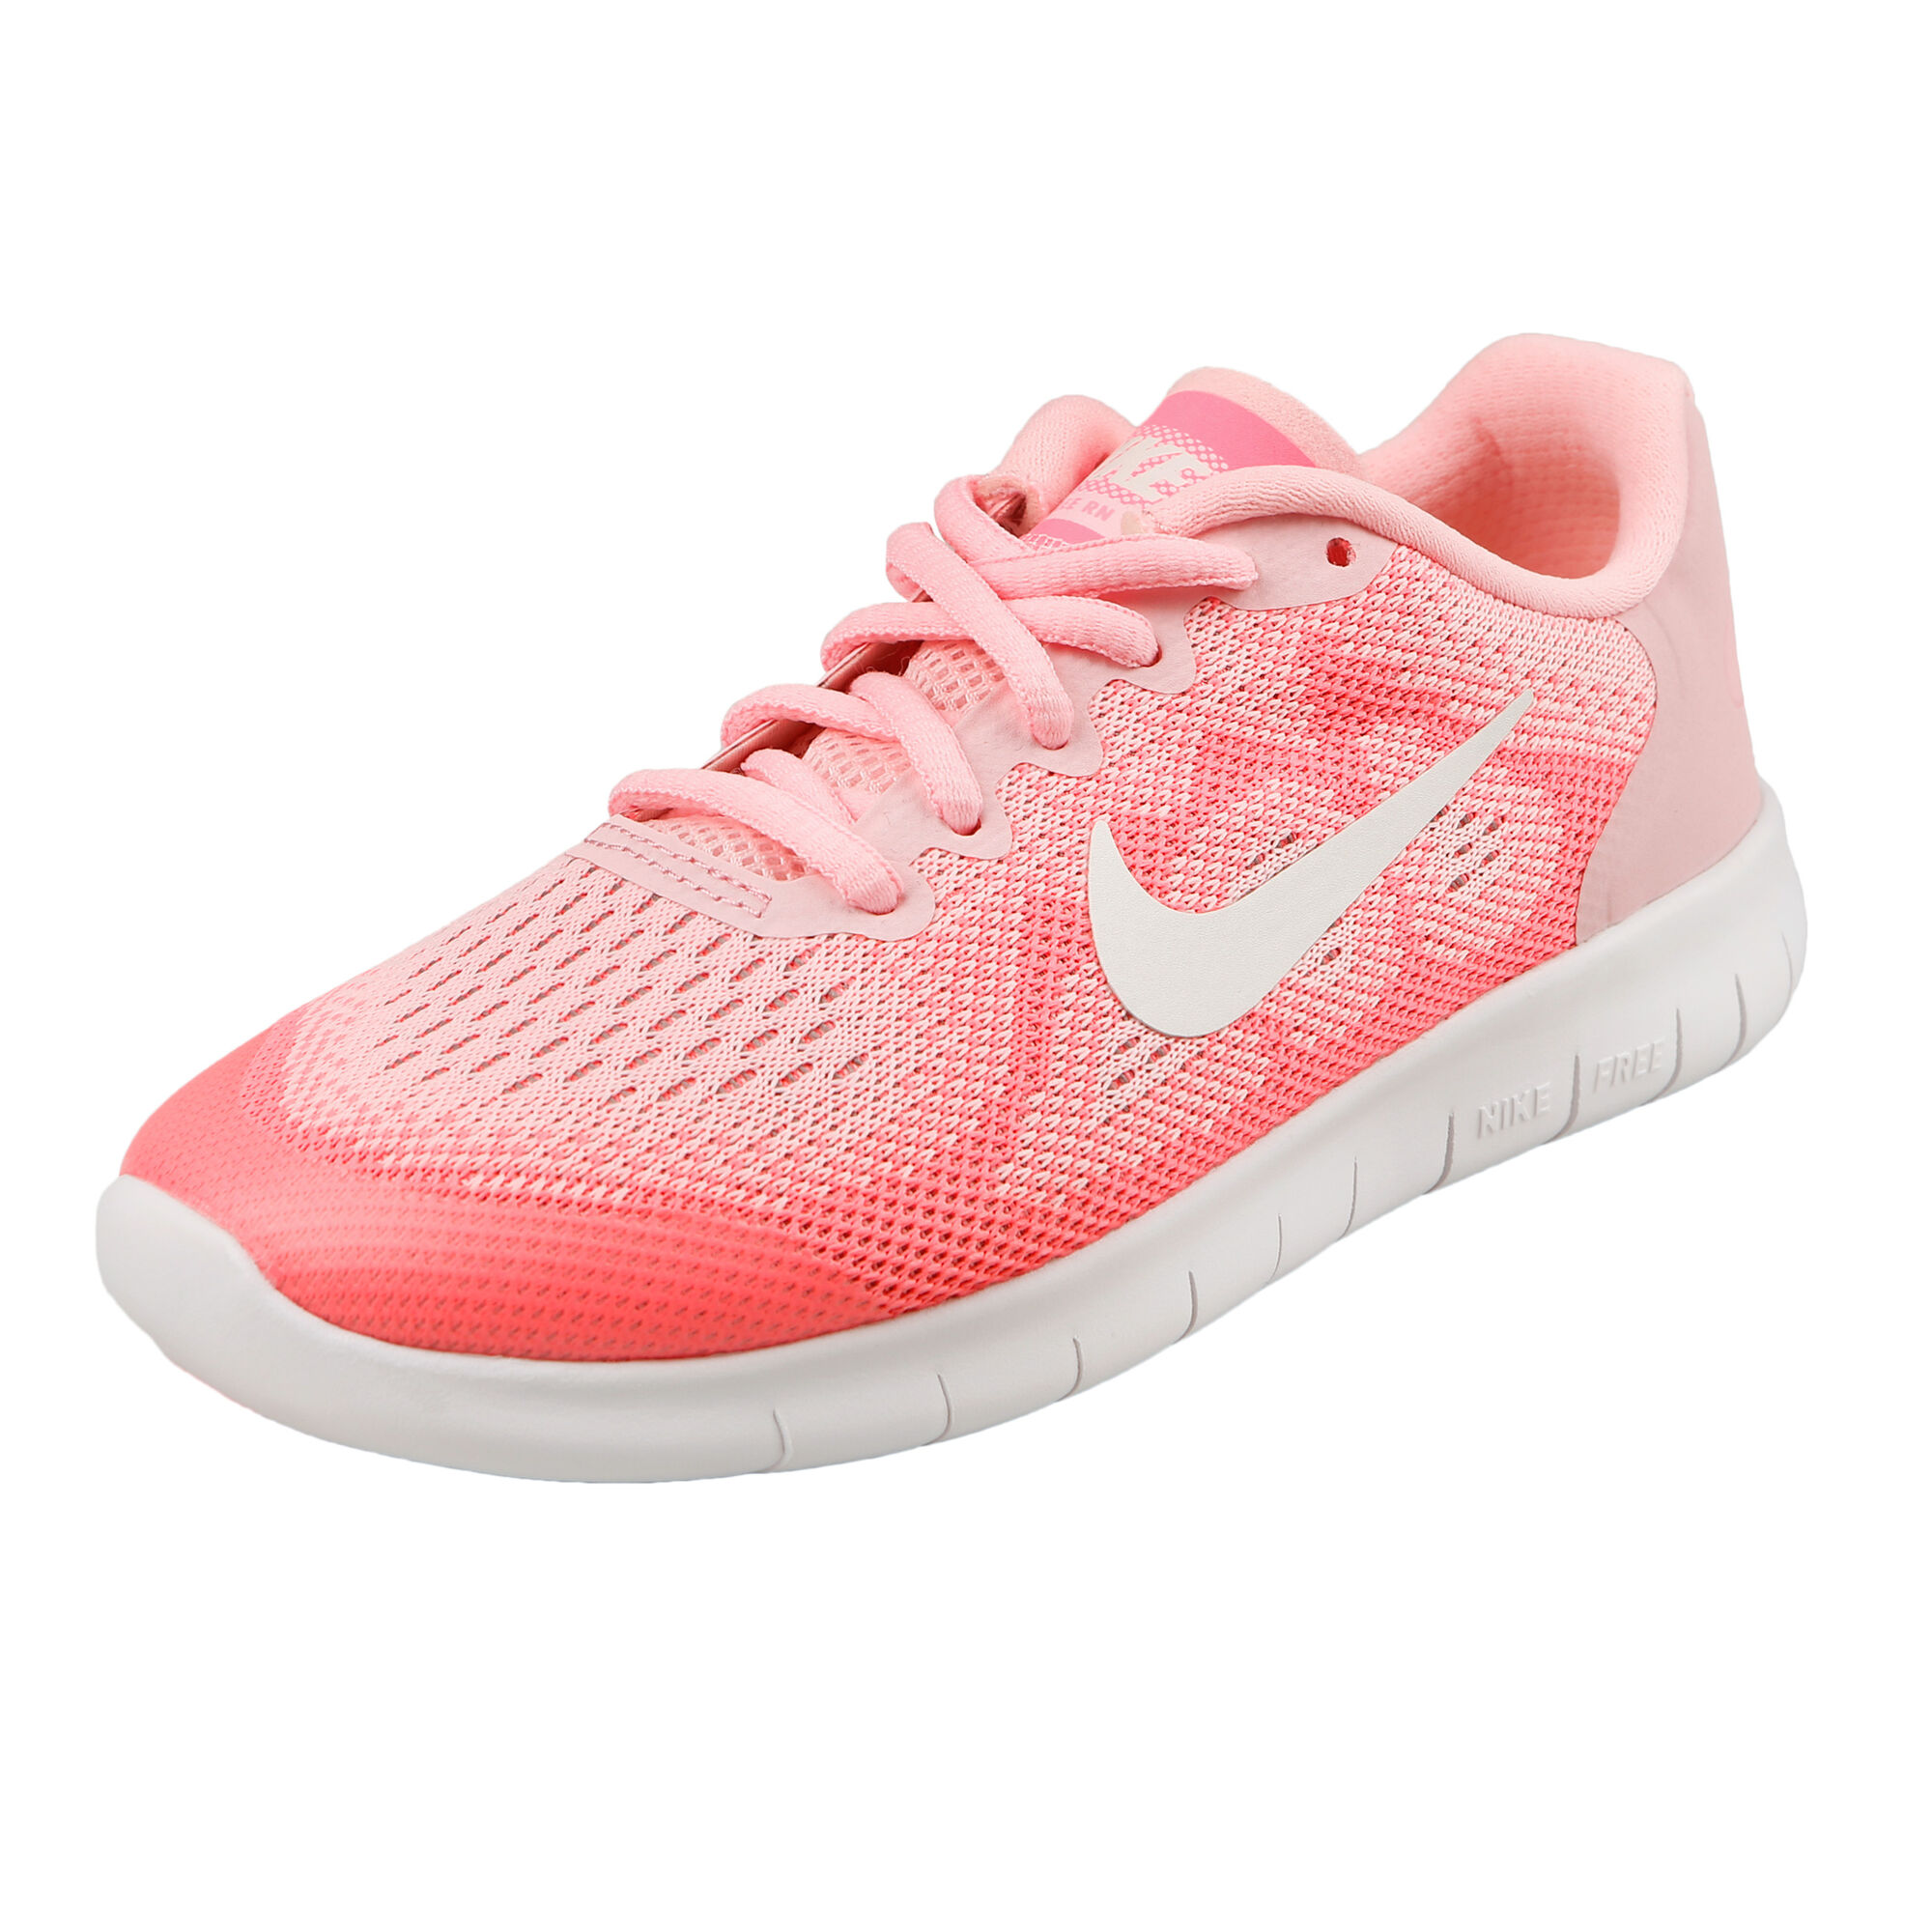 hot sale online 1d0ce a7df1 buy Nike Free Run 2017 Natural Running Shoe Kids - Pink, White ...